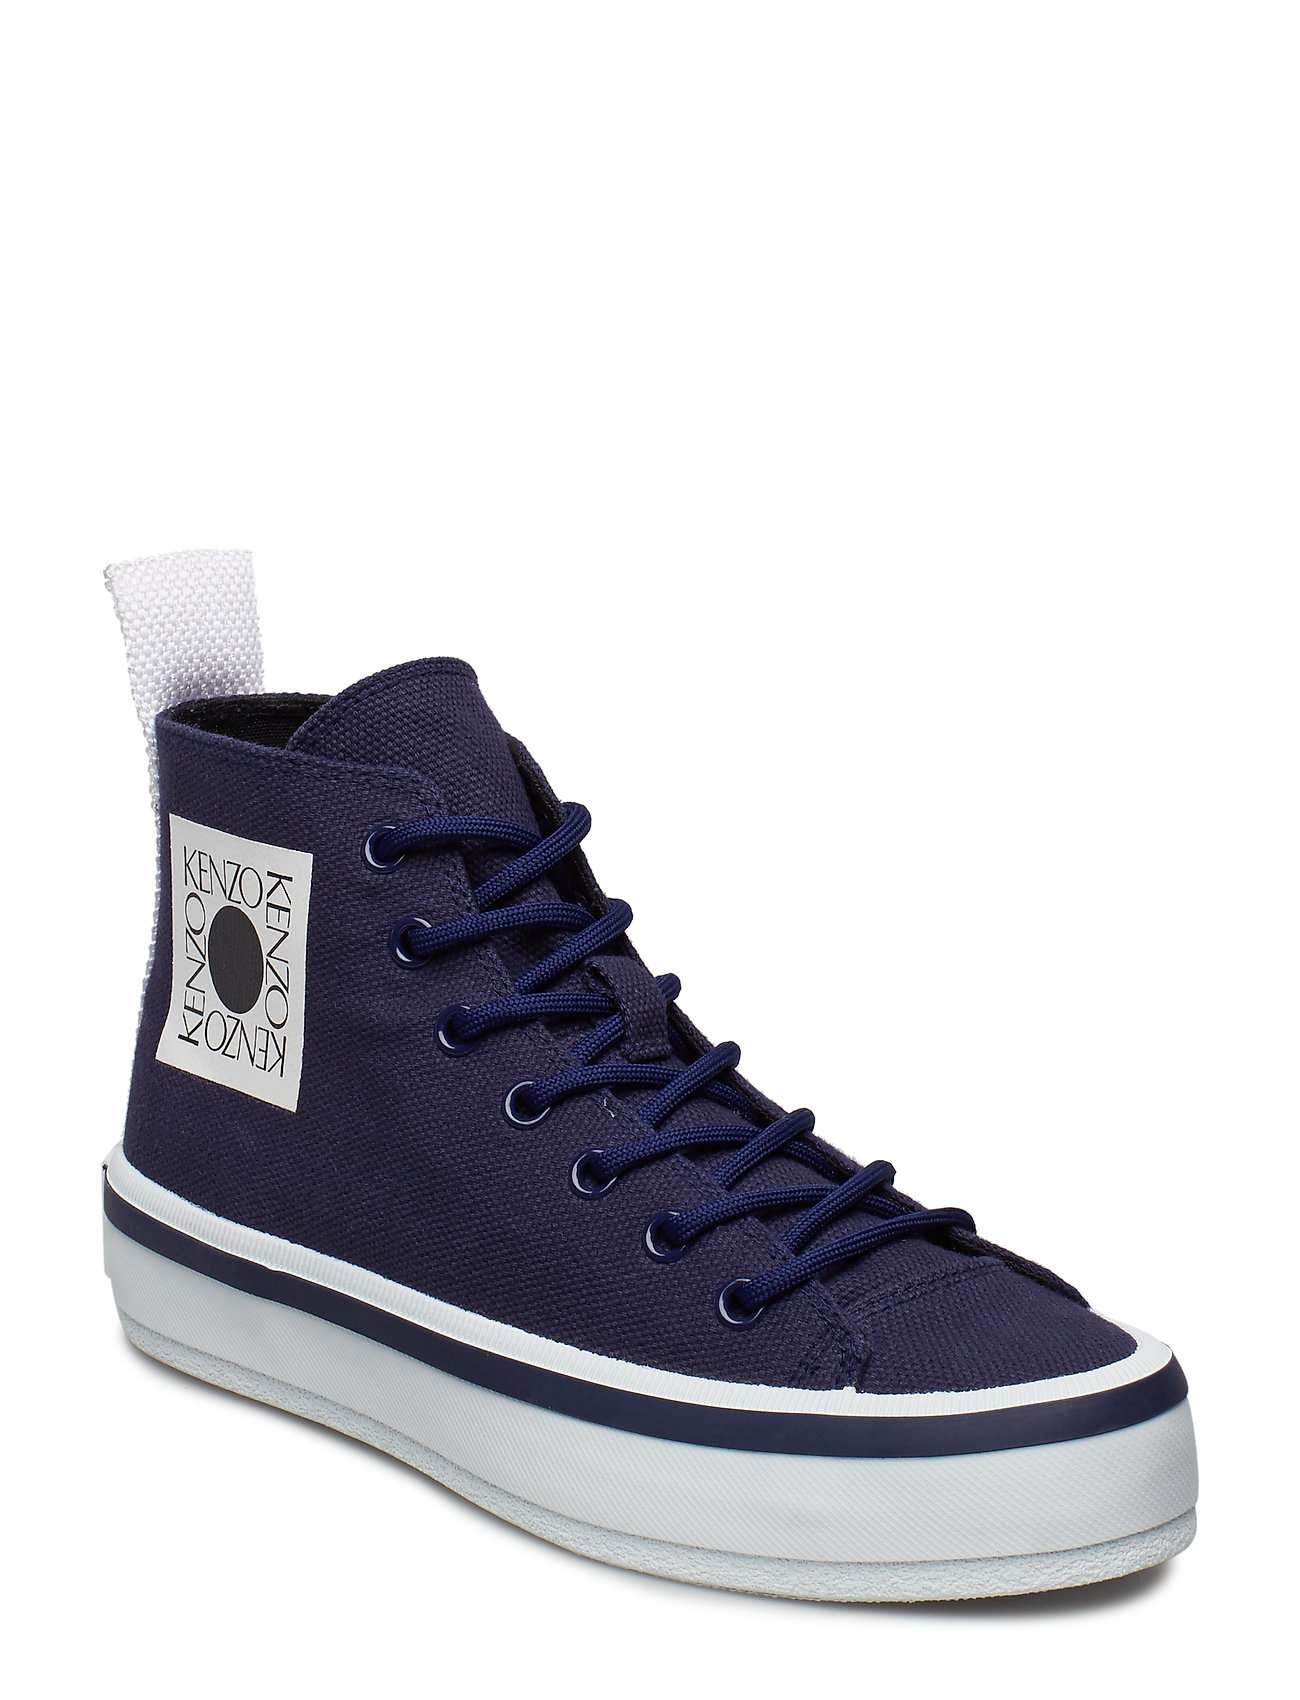 Image of Low Top Sneaker Main High-top Sneakers Blå Kenzo (3120751623)